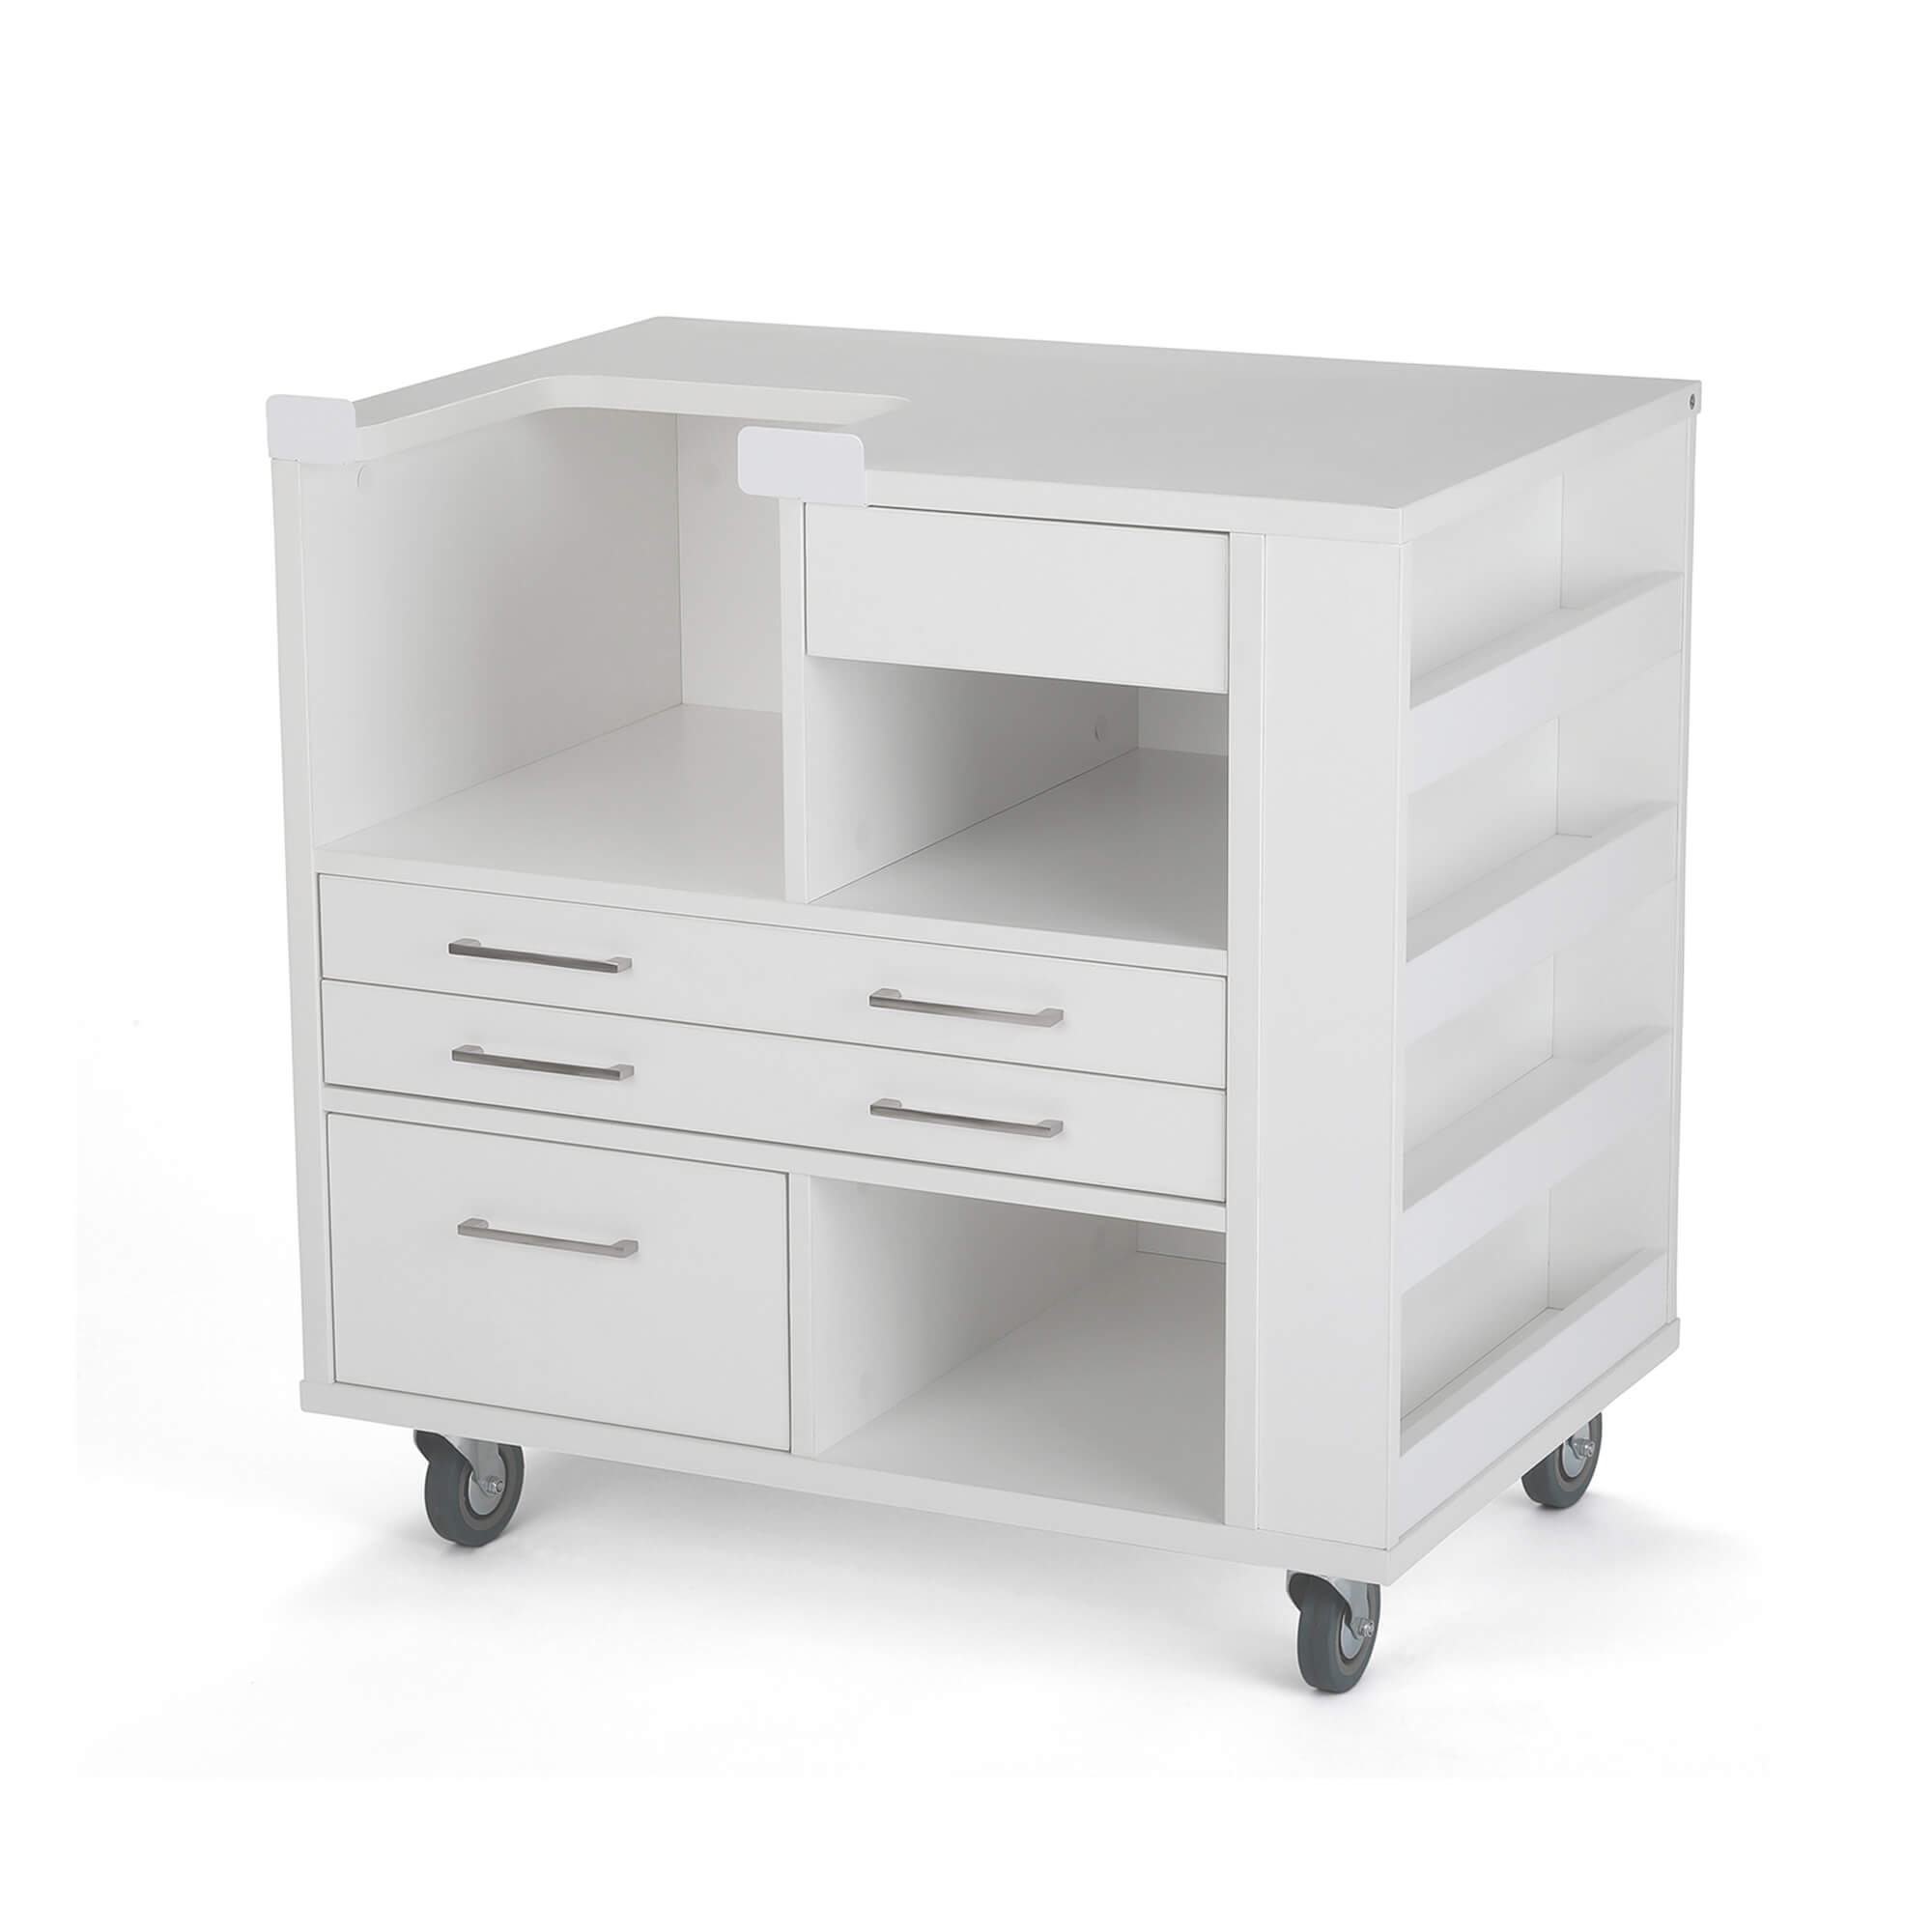 Ava Embroidery Cabinet  Arrow Sewing Cabinets